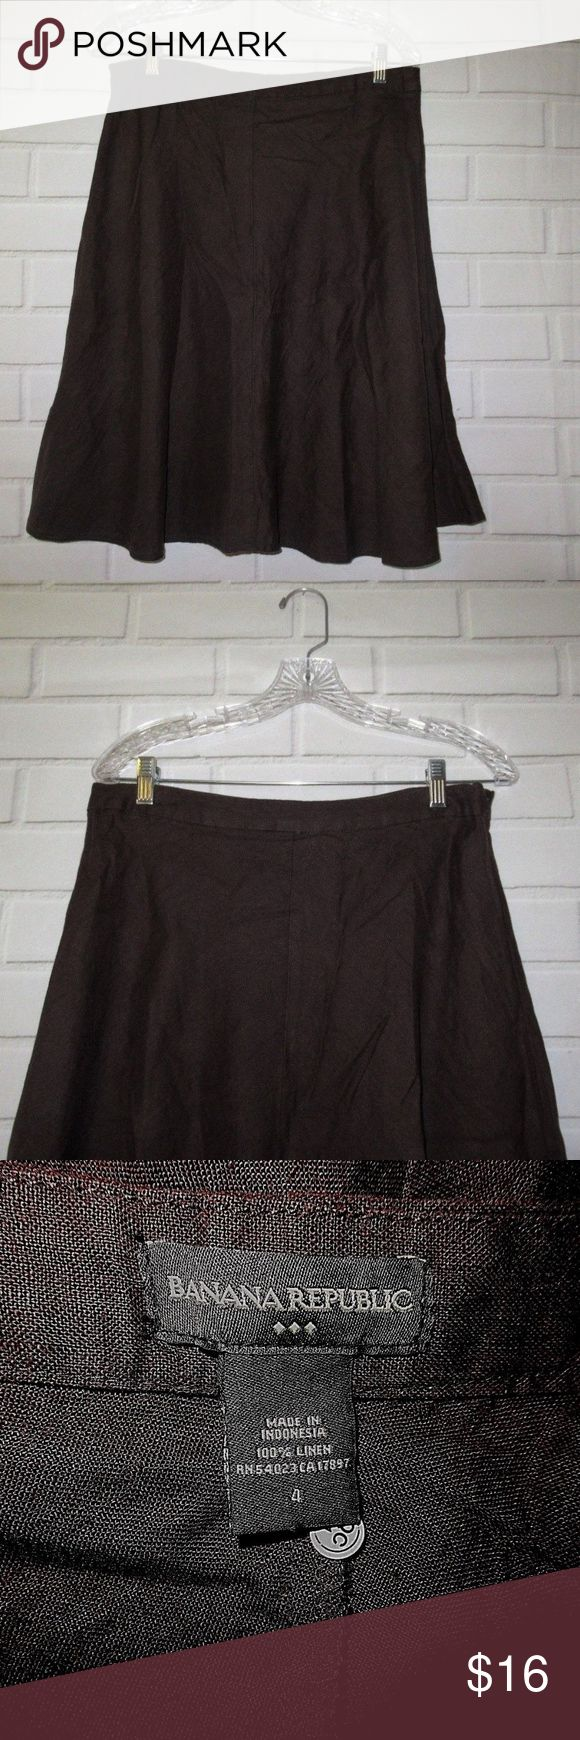 "Banana Republic Women's Skirt Size 4 Career Casual Banana Republic Women's Skirt Size 4 Career Casual Work Brown Flare Linen, Side Zipper Waist:30"" Length:24"" Very good conditions. (A14) Banana Republic Skirts"